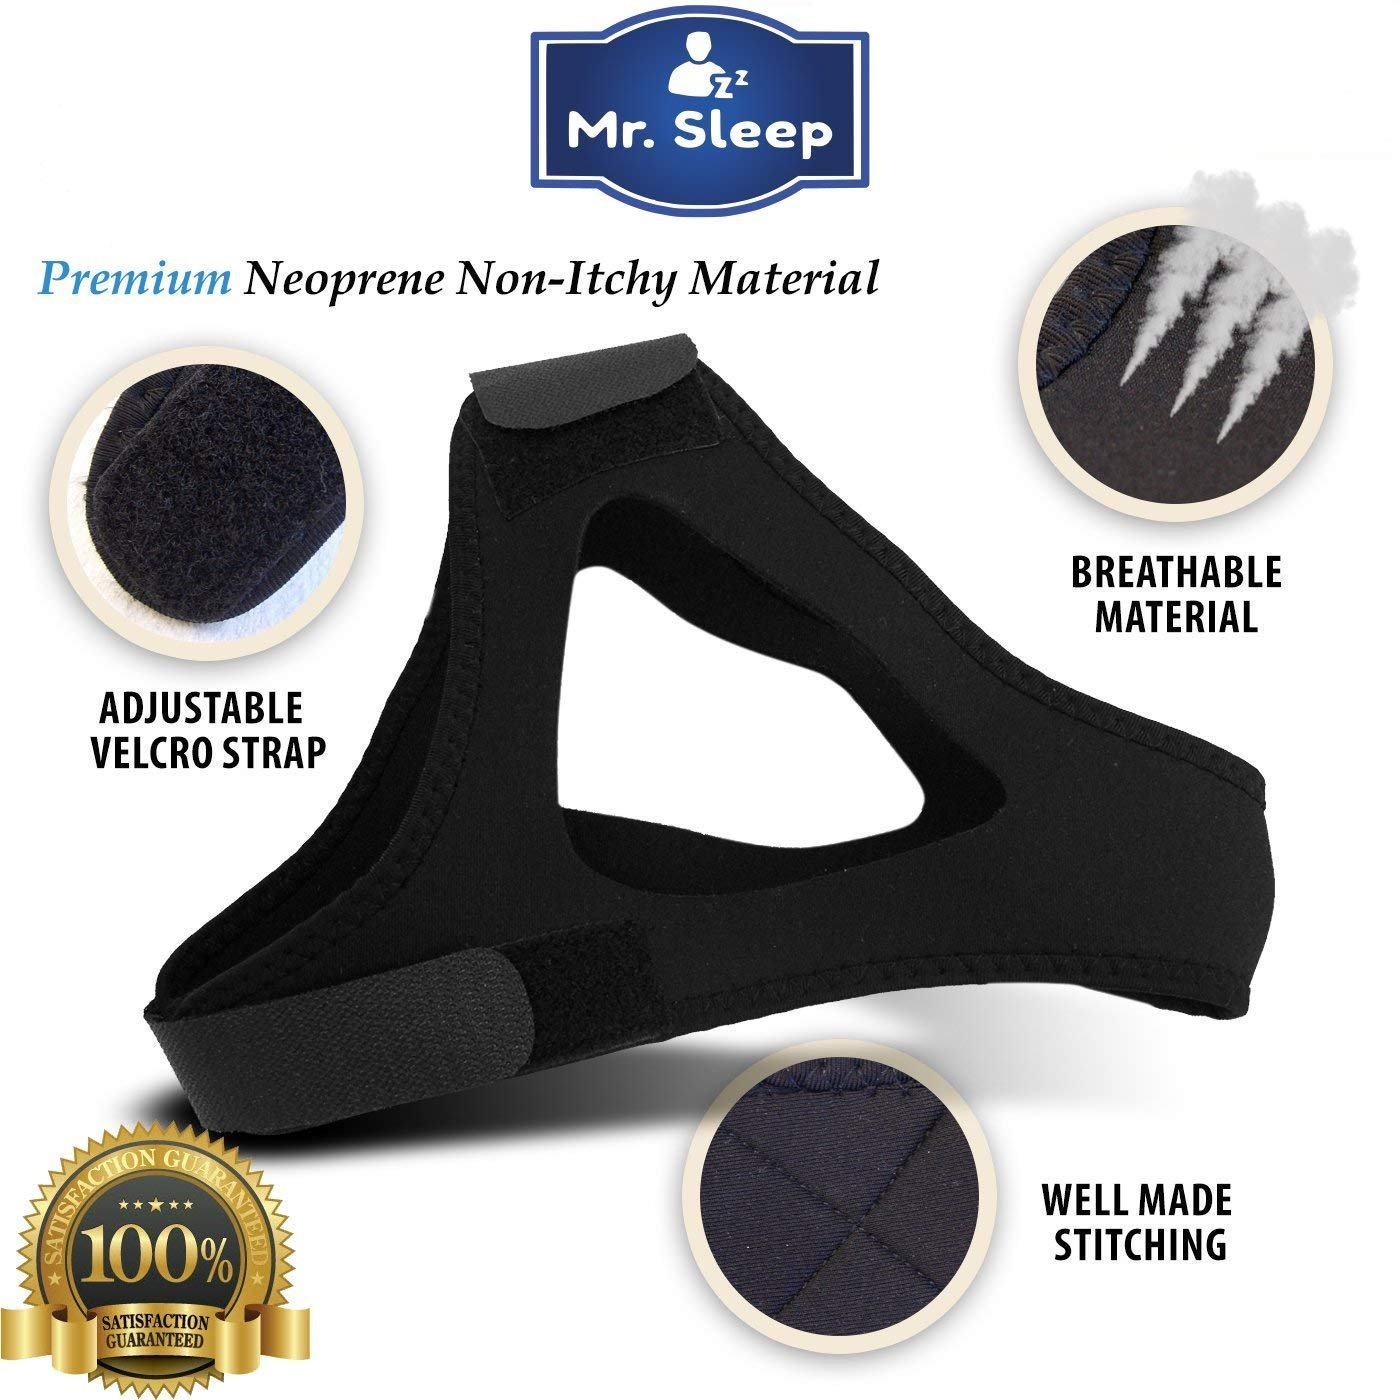 Snoring Solution,3 in 1 Anti Snoring Devices,Nose Vents,Nasal Dilators,Anti Snoring Mouthpiece,Snoring Mouth Guard,Anti Snoring Chin Strap Included,Snore Stopper-Designed by Mr.Sleep by Mr.Sleep (Image #4)